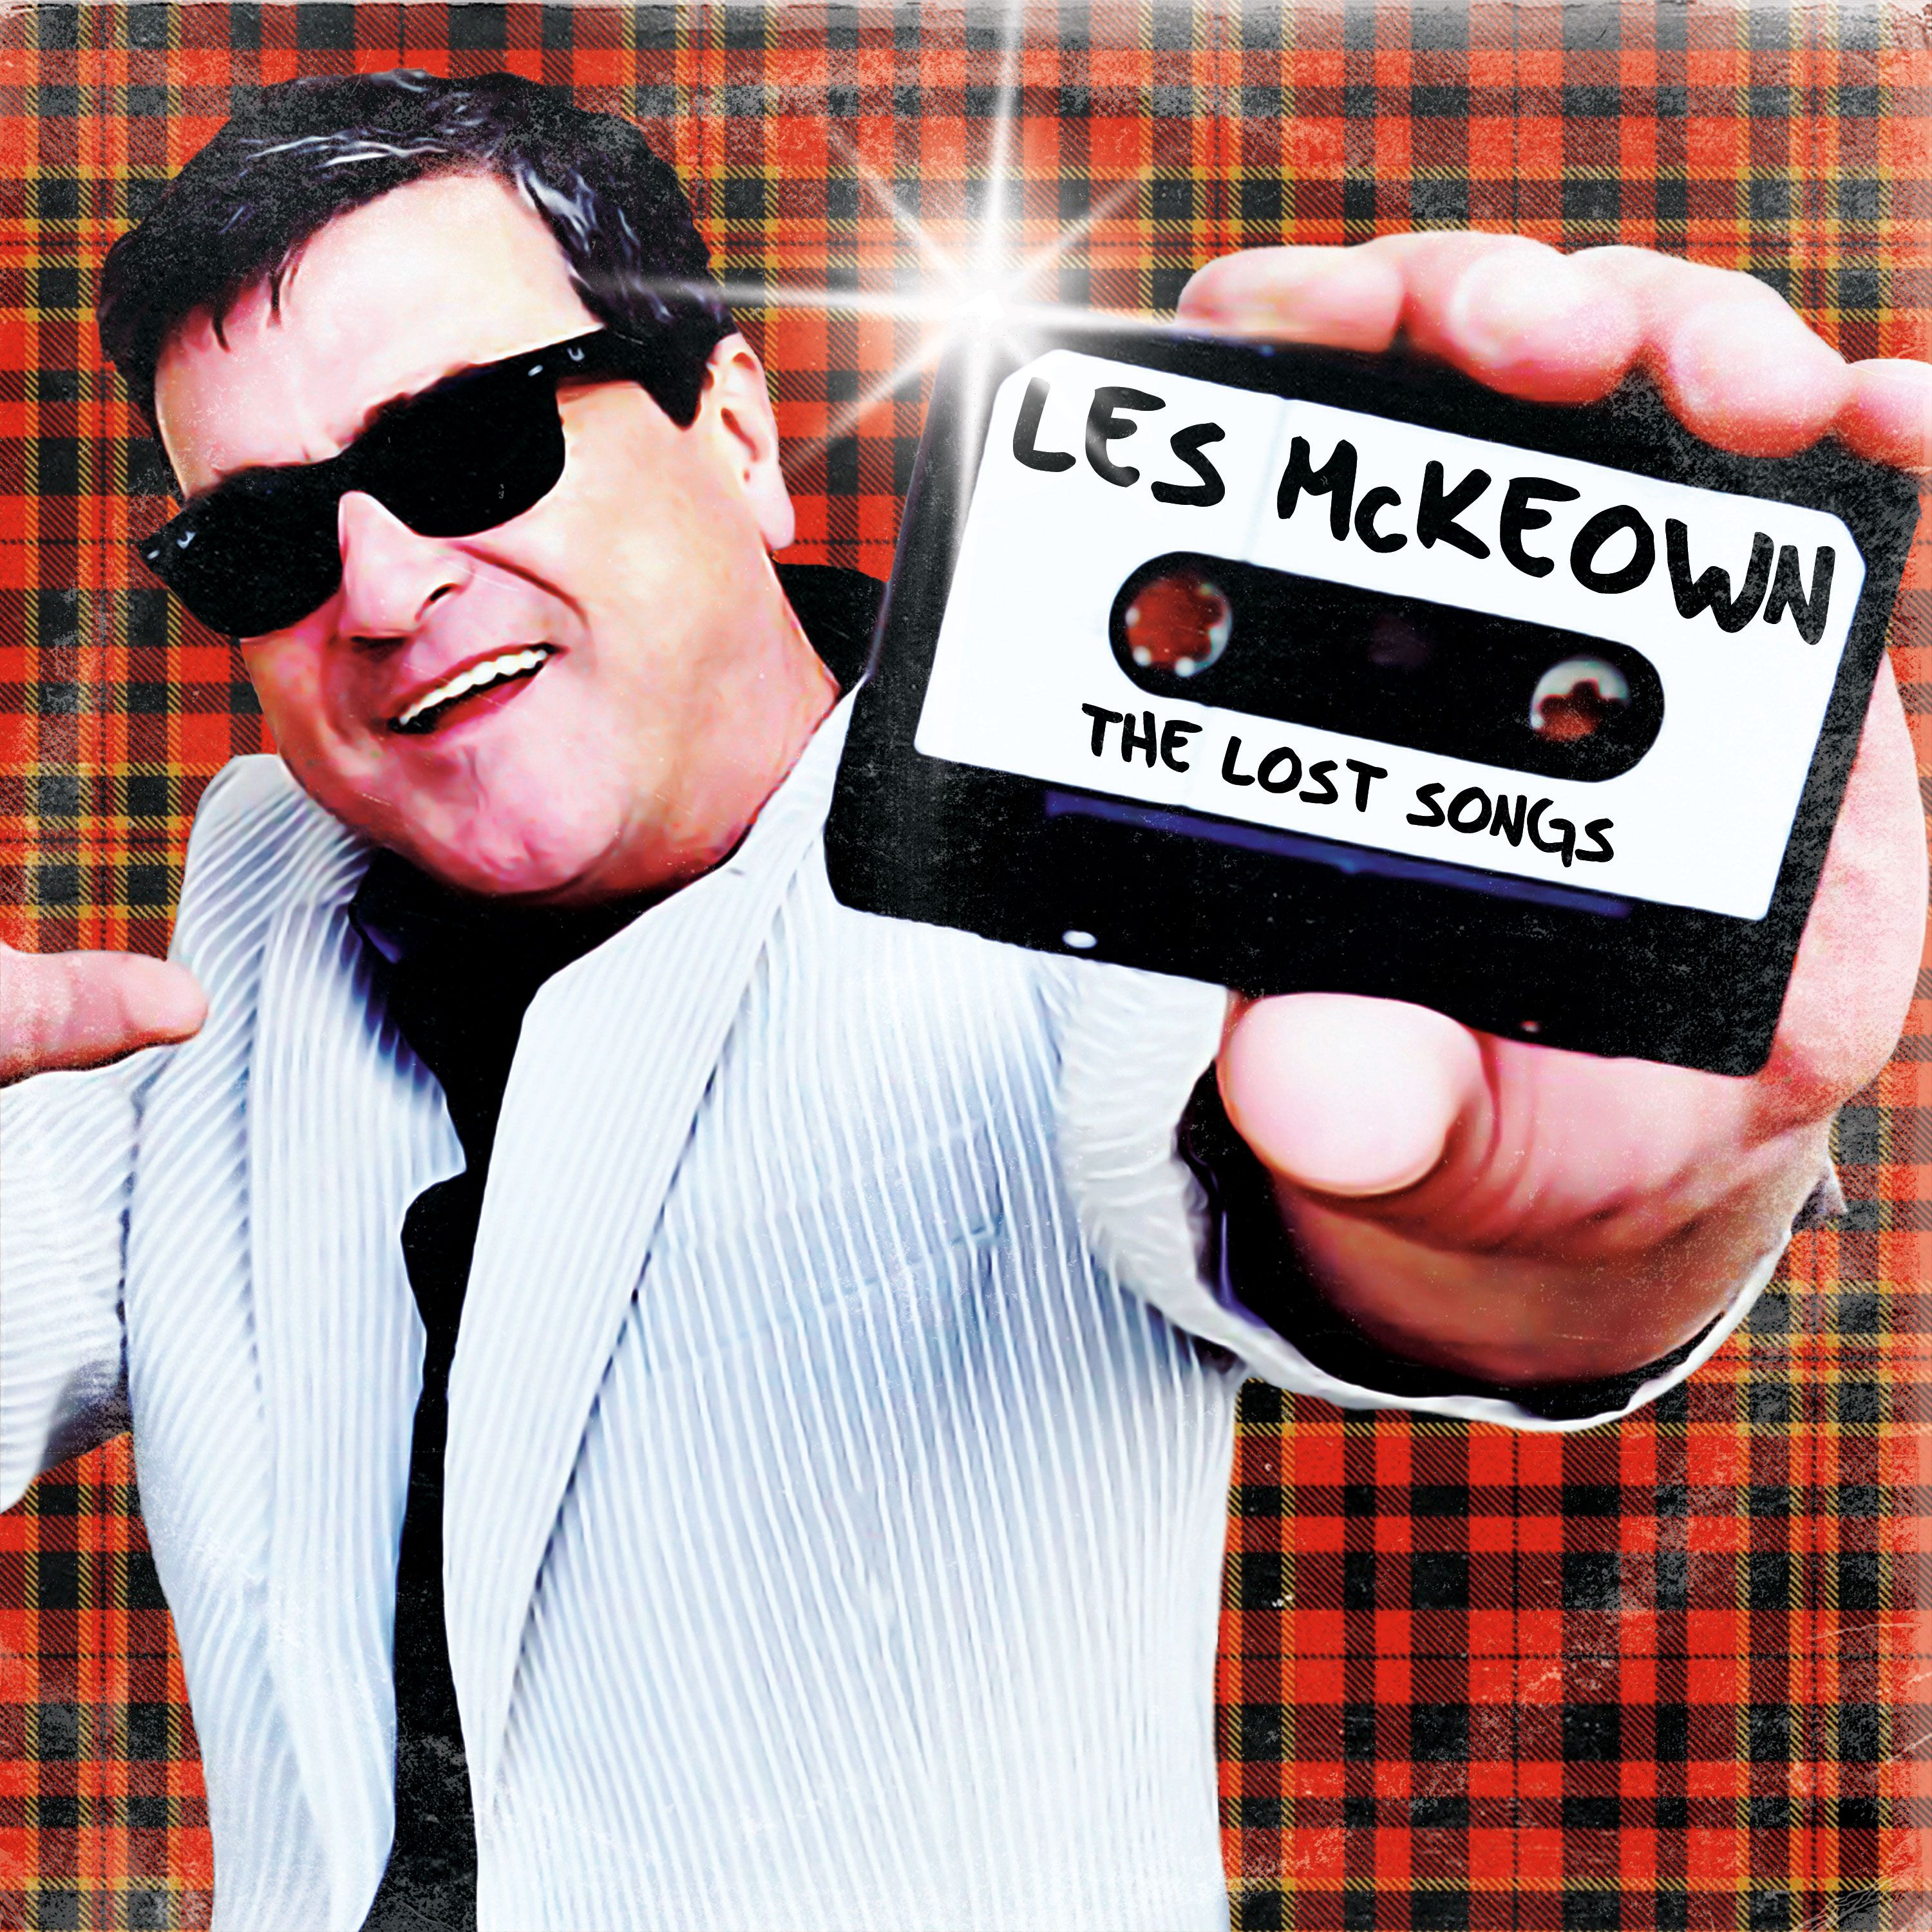 The new solo album by Bay City Rollers frontman Les McKeown....At the height of Rollermania when Bay City Rollers were topping charts around the world, charismatic frontman Les was not only one of the most famous people on earth, he was also a dynamic and talented songwriter. However, he was rarely given the chance to shine as a writer as songwriters outside the band composed many of the Bay City Rollers songs.Les would sit in hotel rooms around the world and compose songs i...